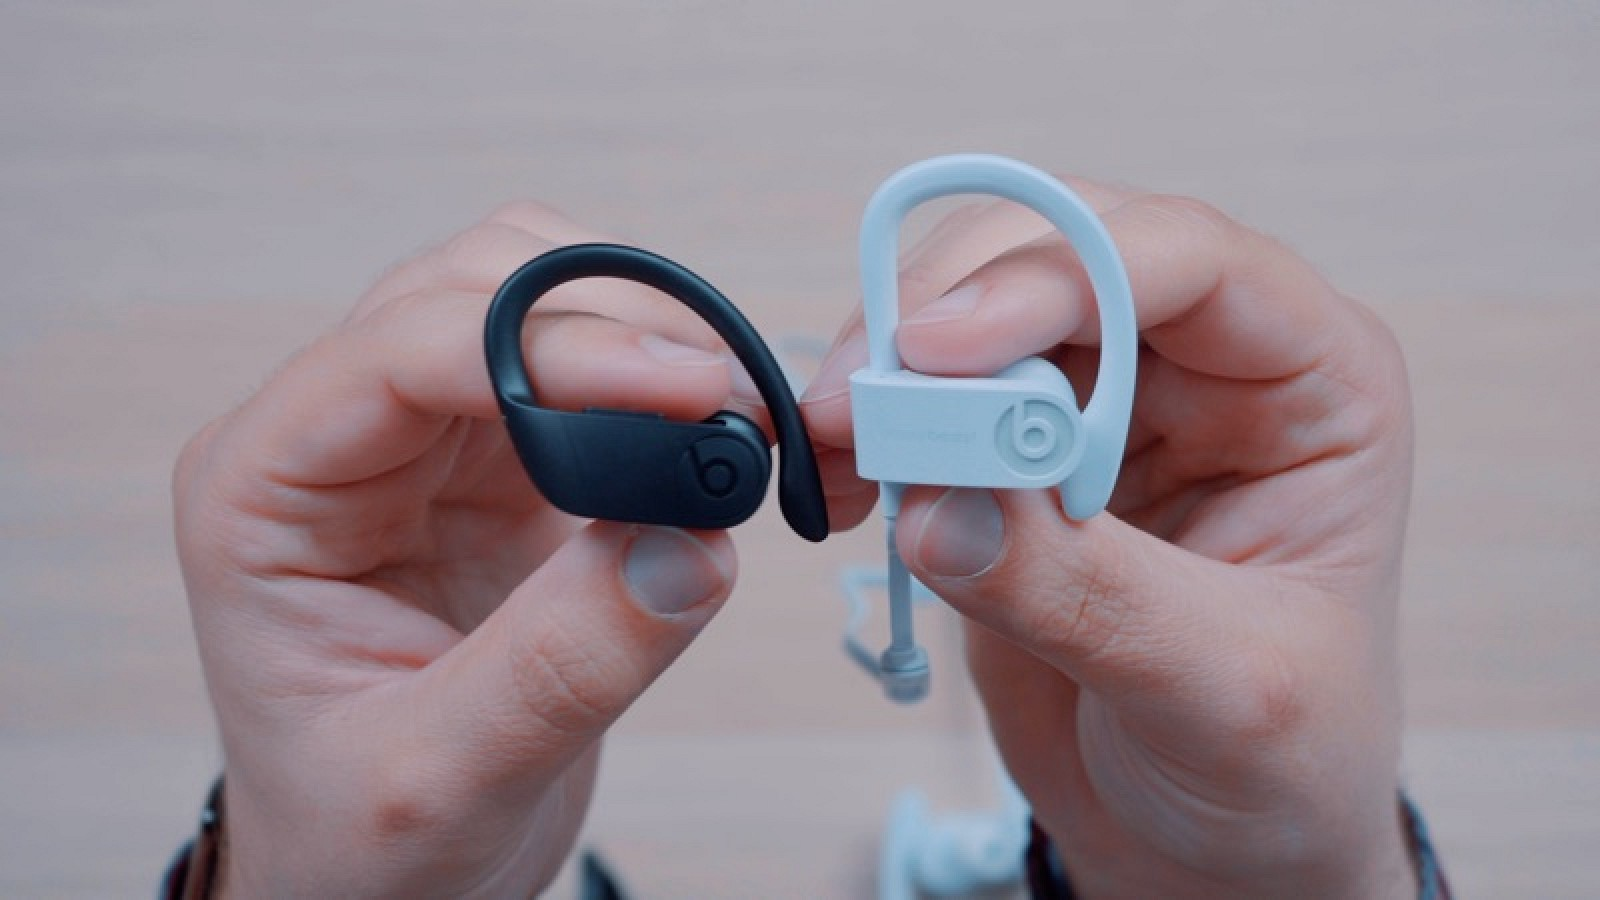 photo of Powerbeats Pro vs. Powerbeats 3 image